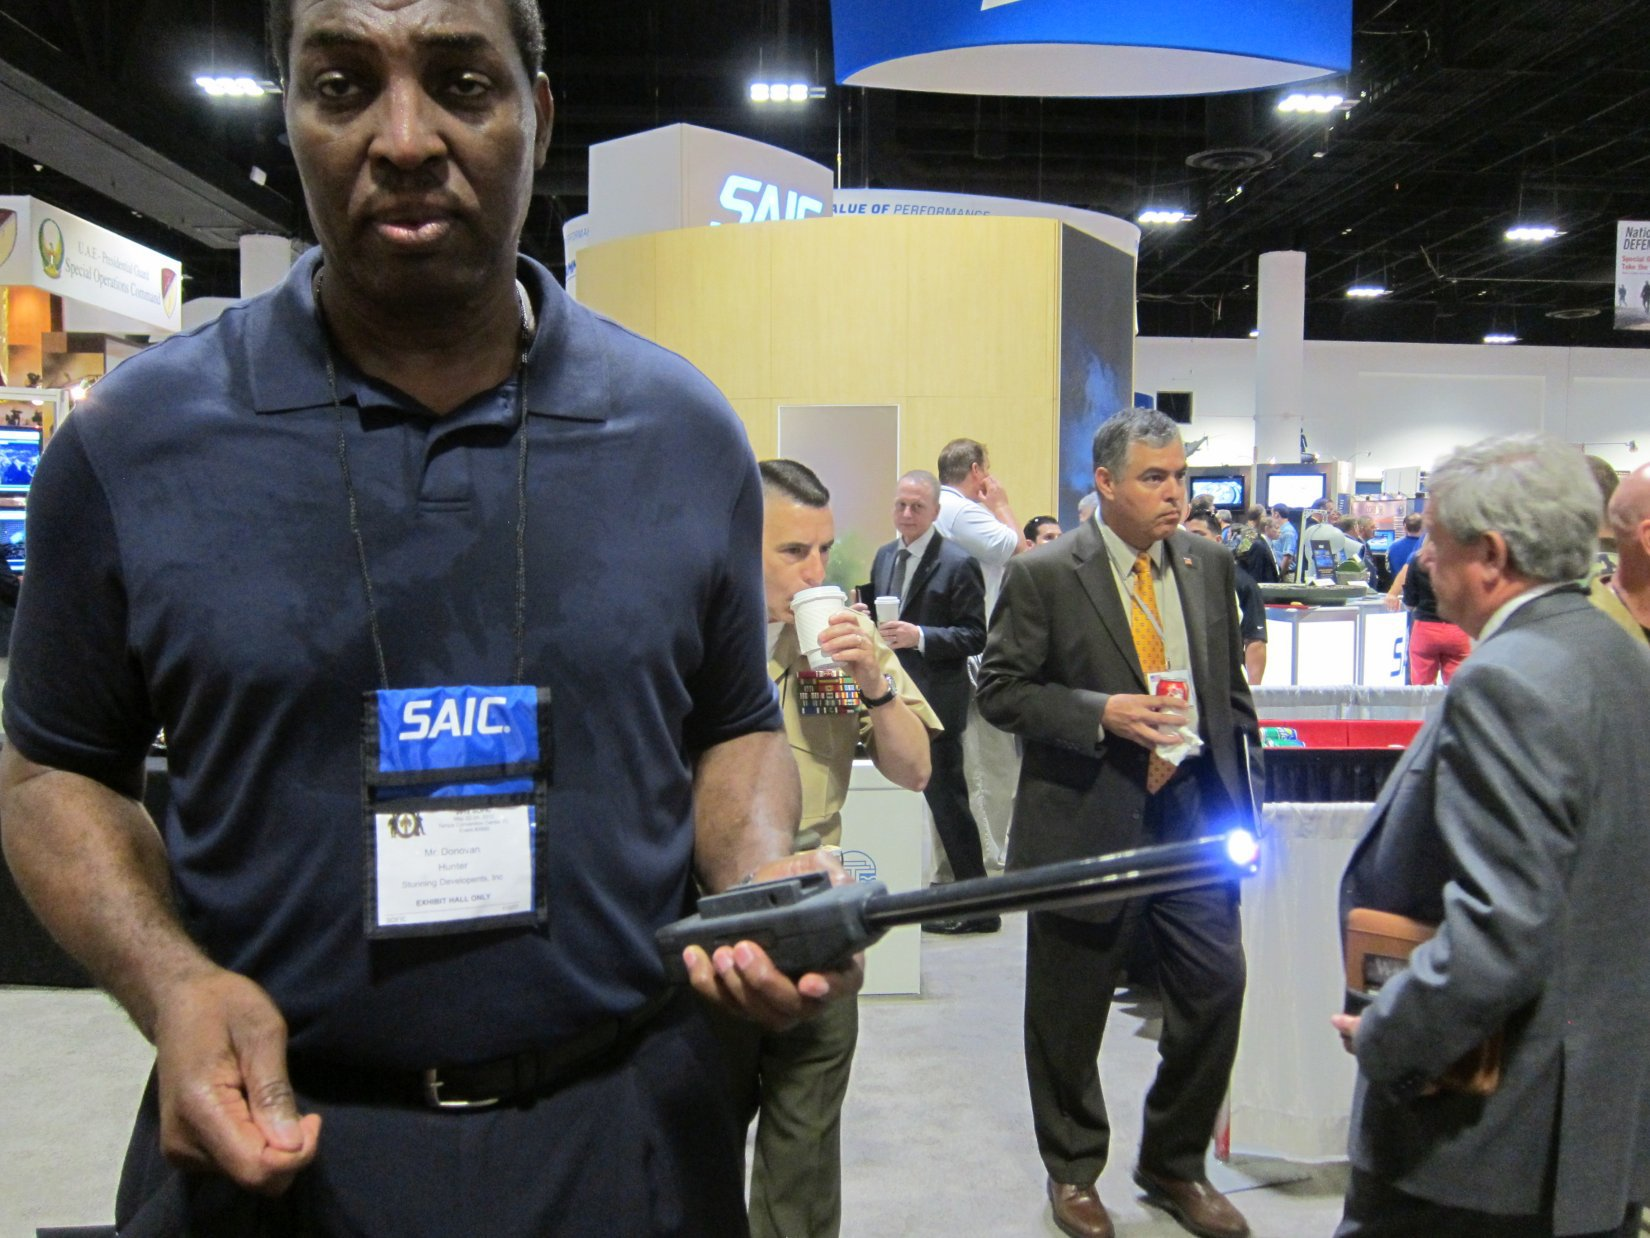 Stunning Developments BattleProd Combat Tactical Stun Baton Donovan Hunter NDIA SOFIC 2012 DefenseReview.com DR 2 Stunning Developments BattleProd Combat/Tactical Stun Baton: 3 5 Million Volt Tactical Cattle Prod for Instant Compliance in Urban Warfare Operations (Video!)